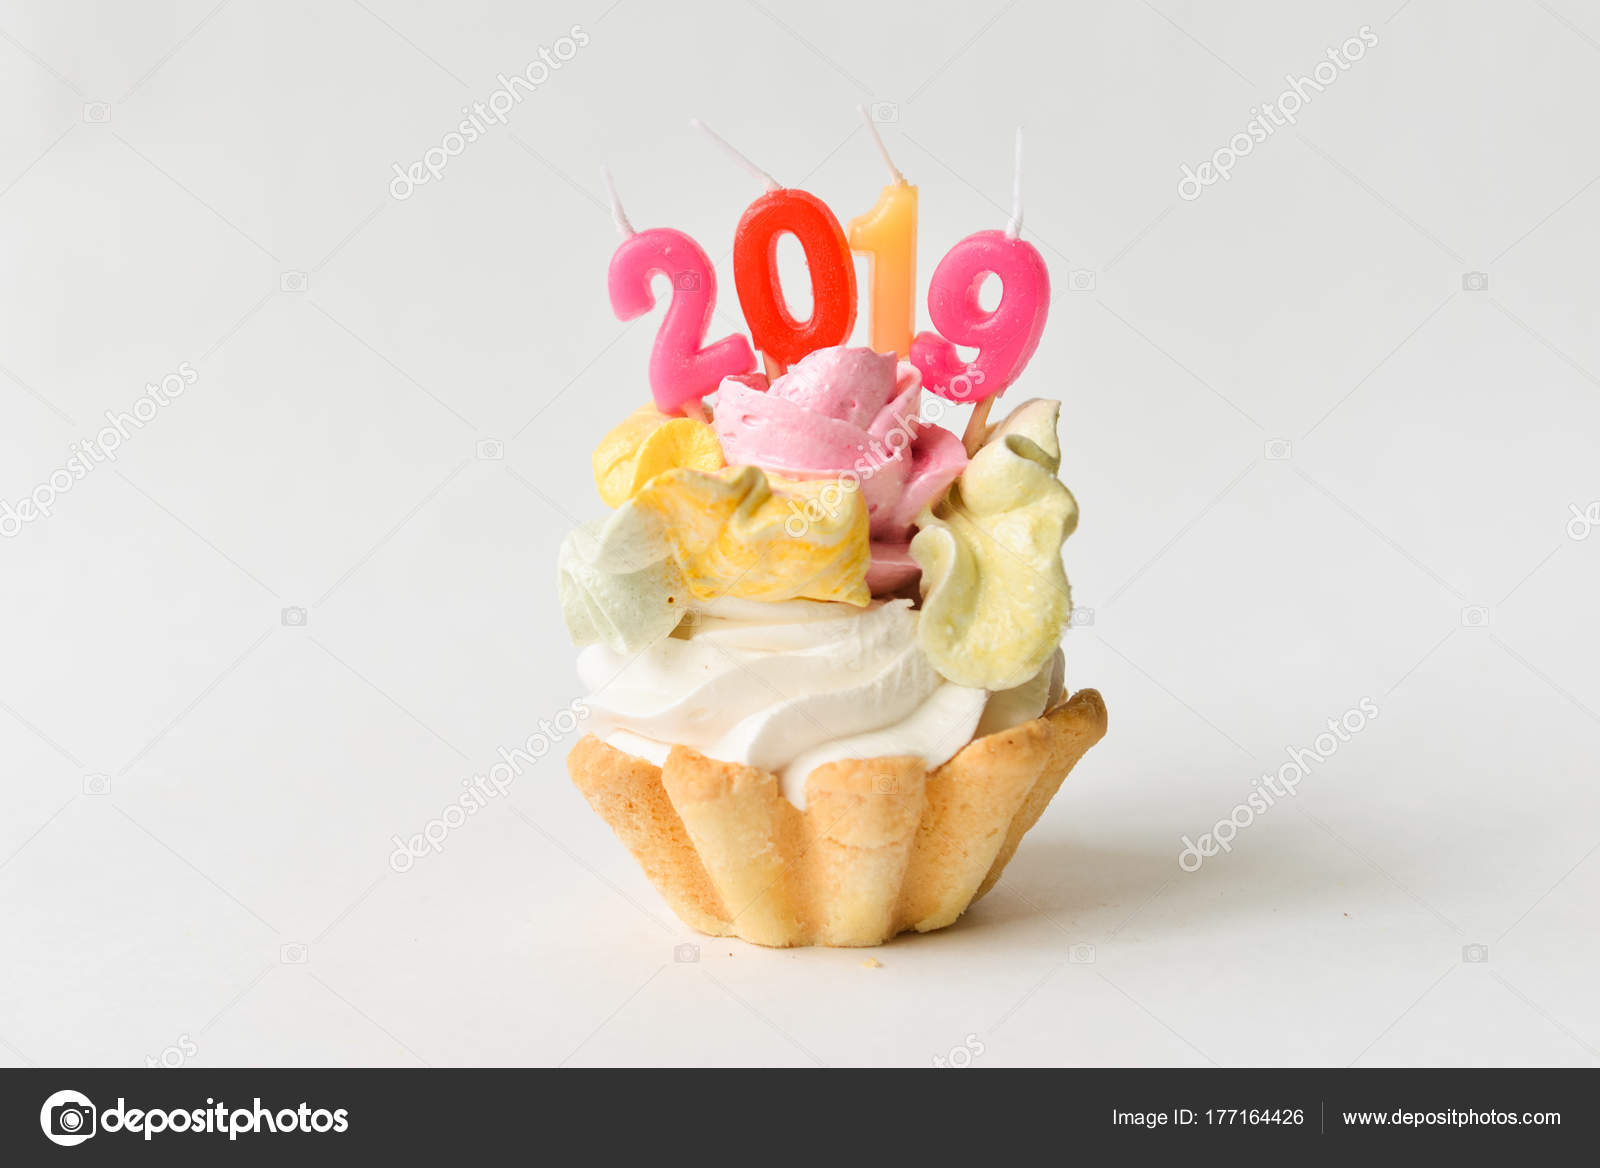 2018 happy new year cupcakes sweet cake with figures 2018 new year decor isolated on white background photo by olgachan